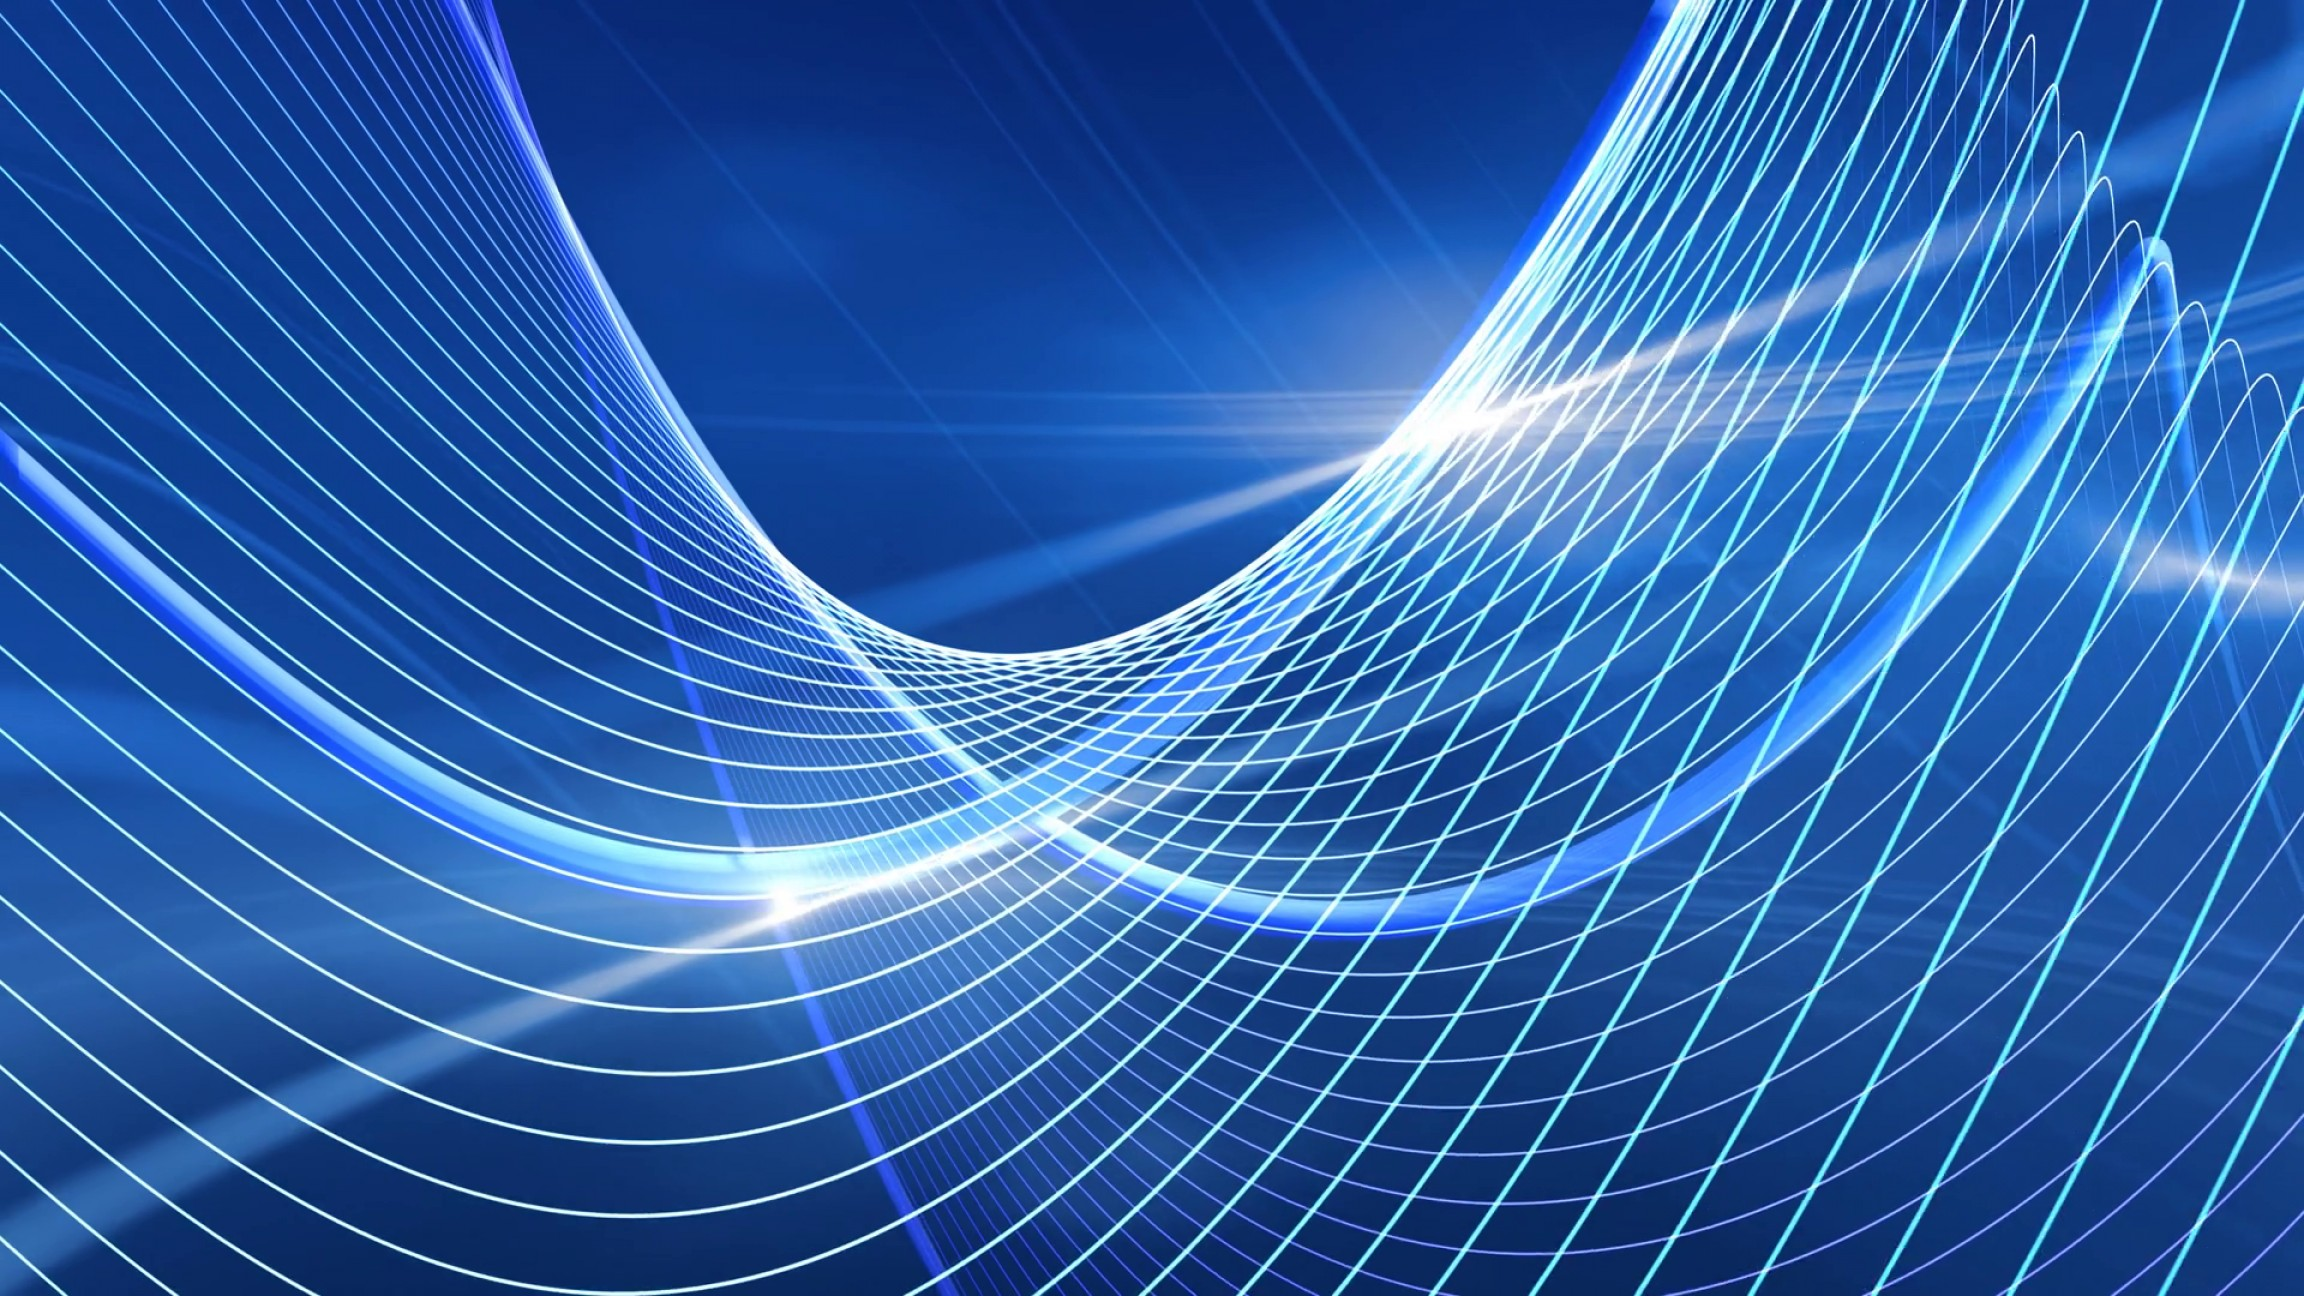 Backgroung Vector: Light Waves Abstract Vector Blue Motion Background Spaokeiziilcy